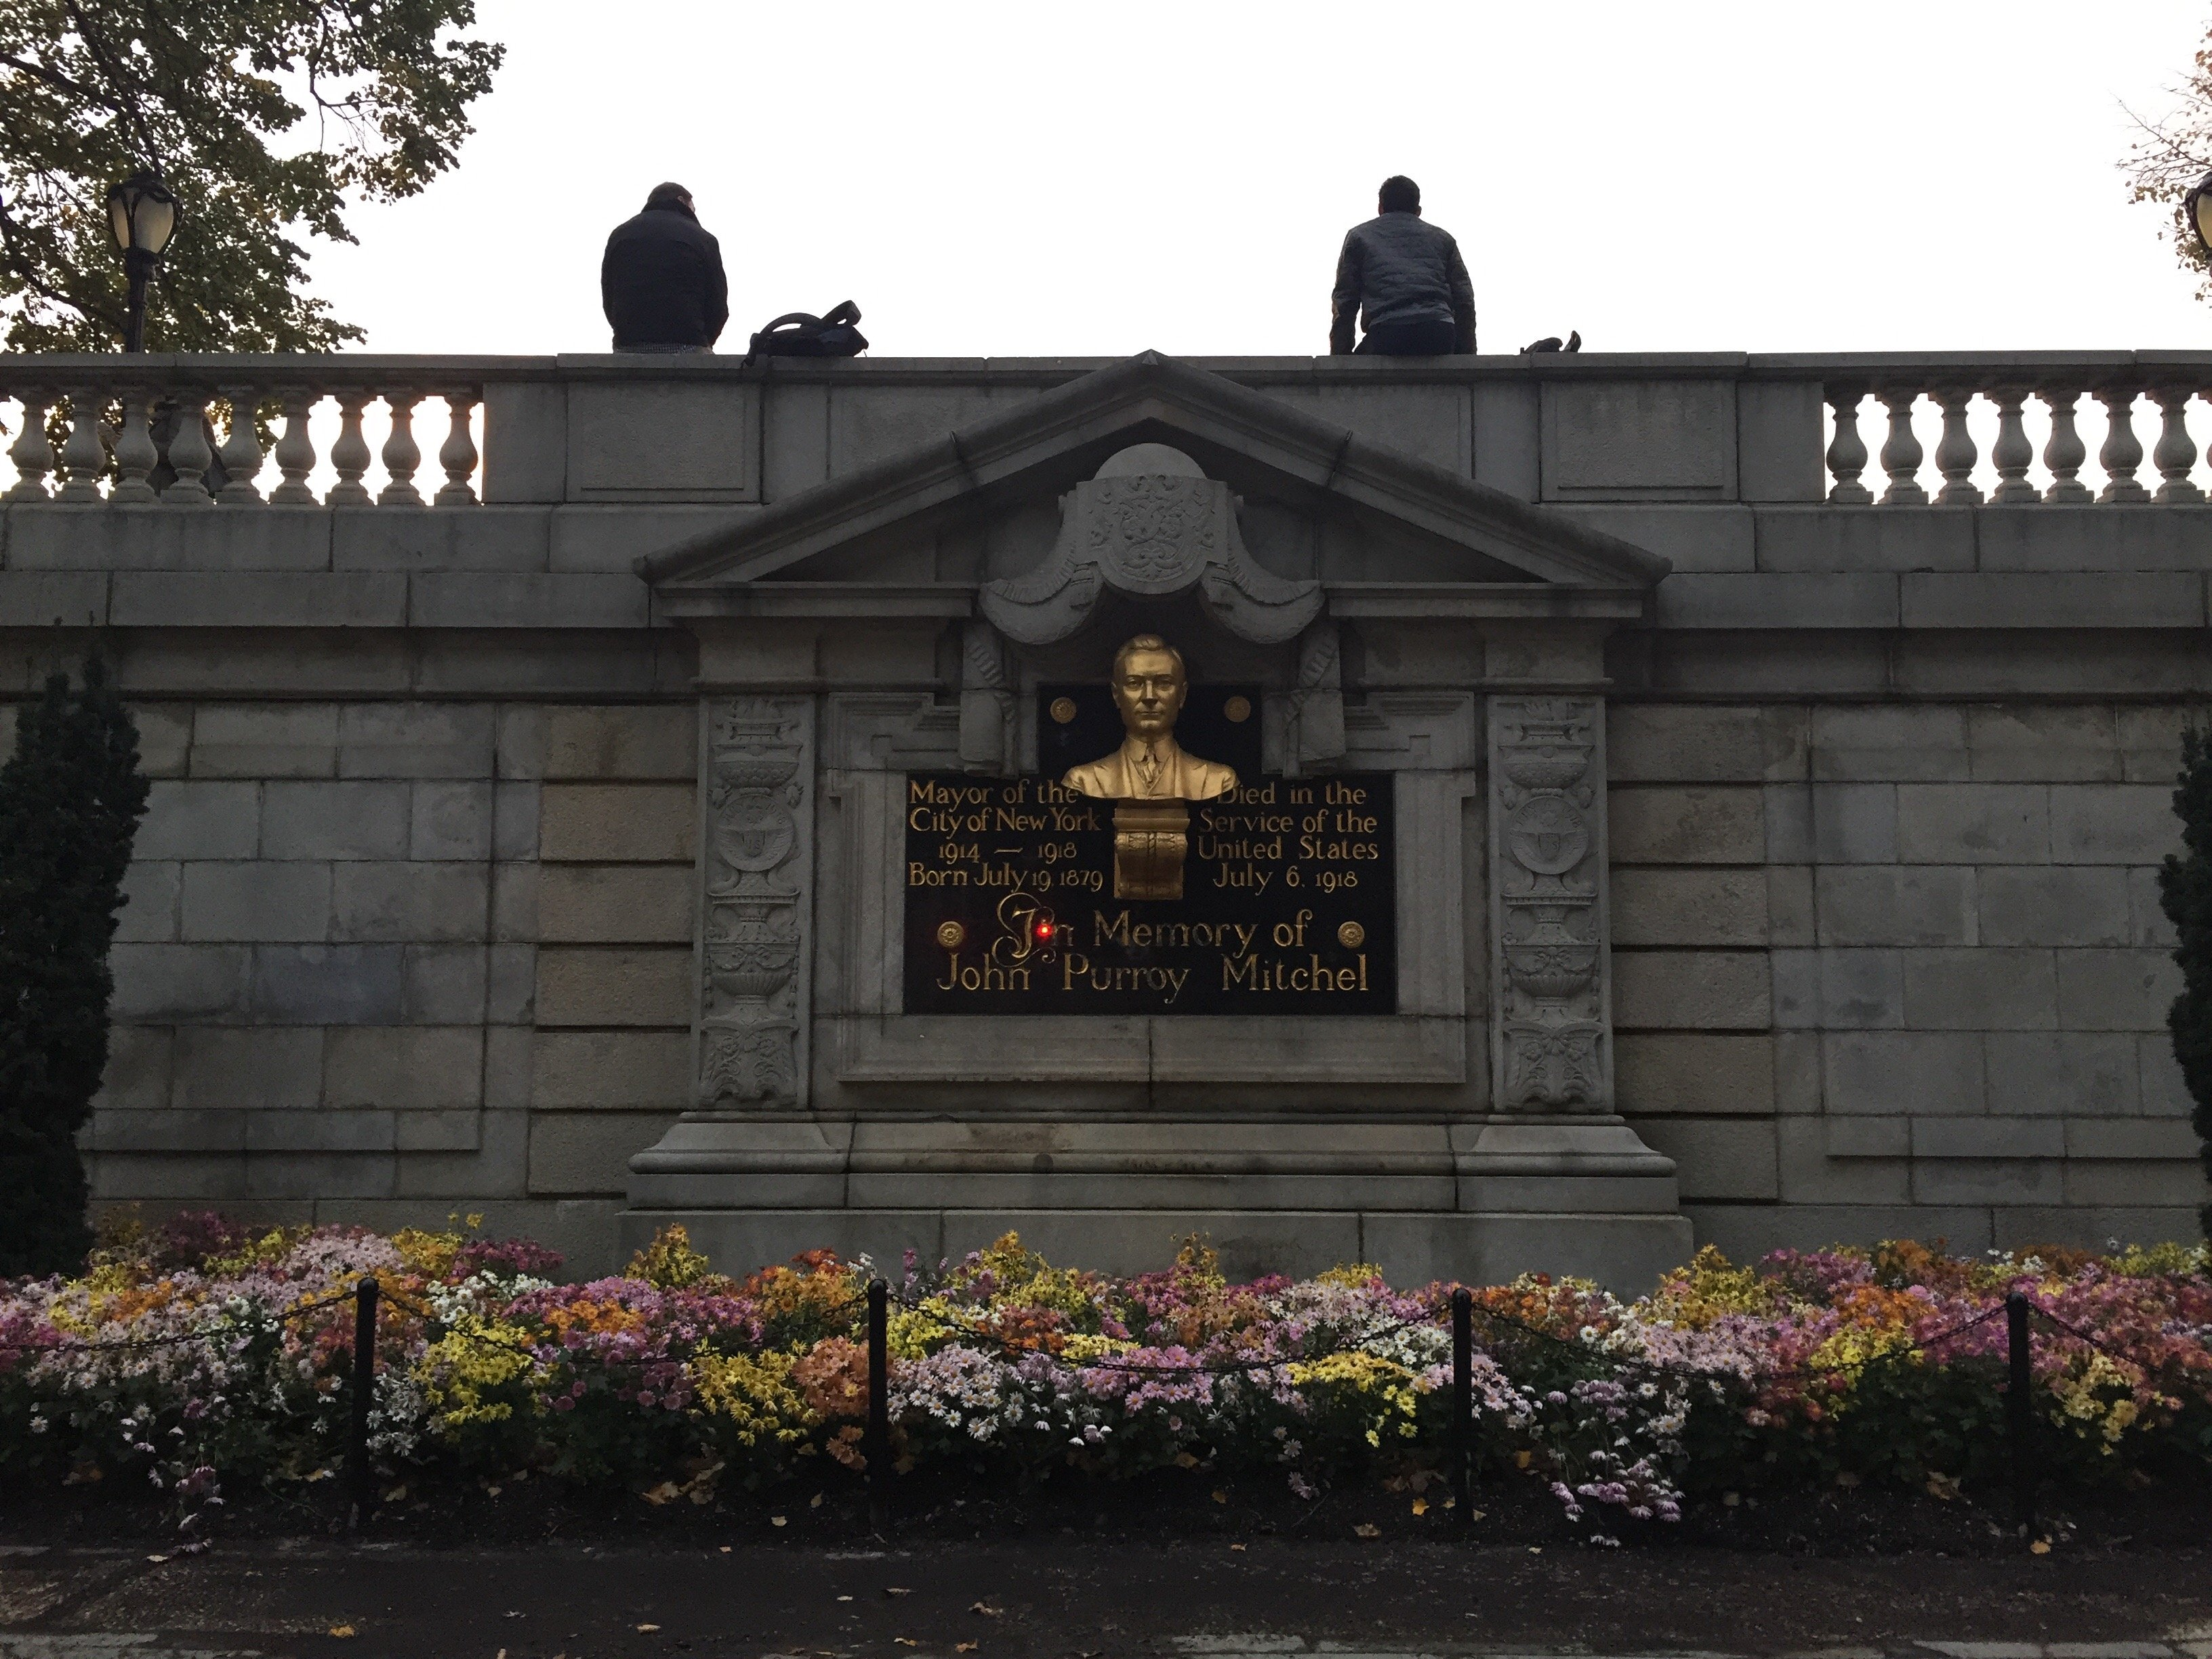 A full view of the John Purroy Mitchel Memorial.